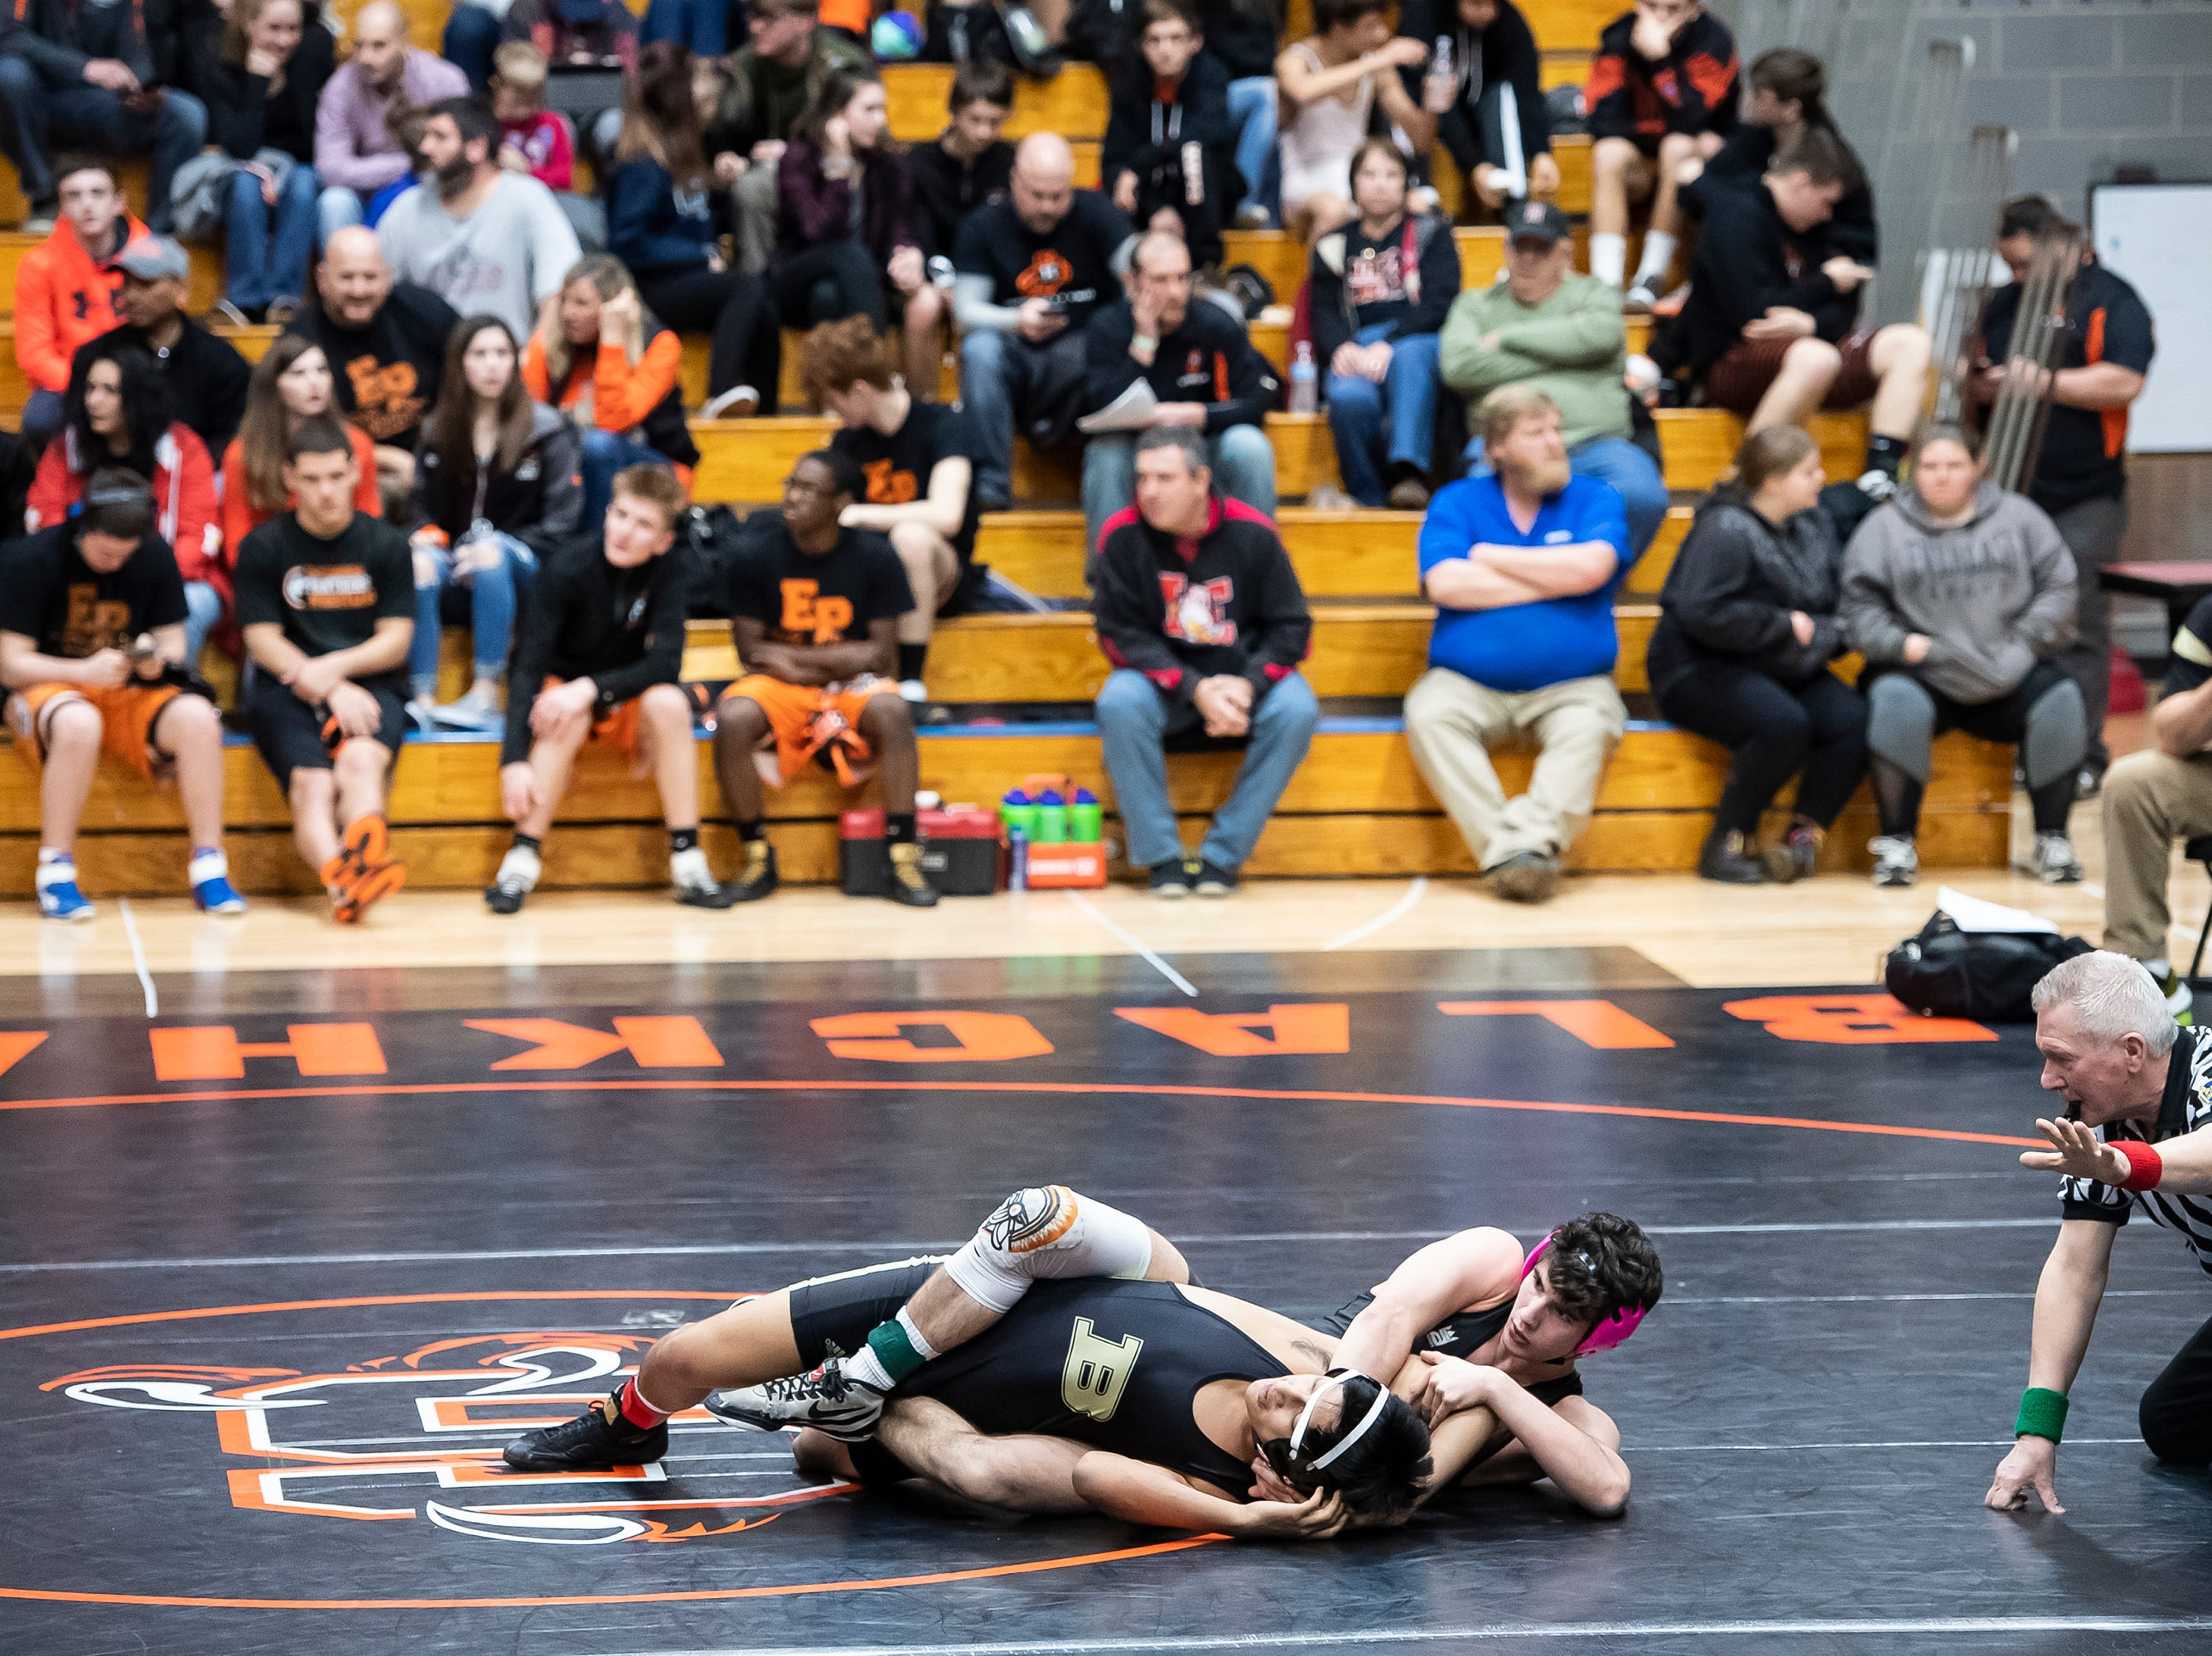 Biglerville's Isaac Sierra-Soto, bottom, wrestles Upper Dauphin's Tyler Wright during a 145-pound bout during the first day of the District 3 Class 2A Section I tournament at Susquenita High School Friday, February 15, 2019. Wright won by tech fall, 17-2.